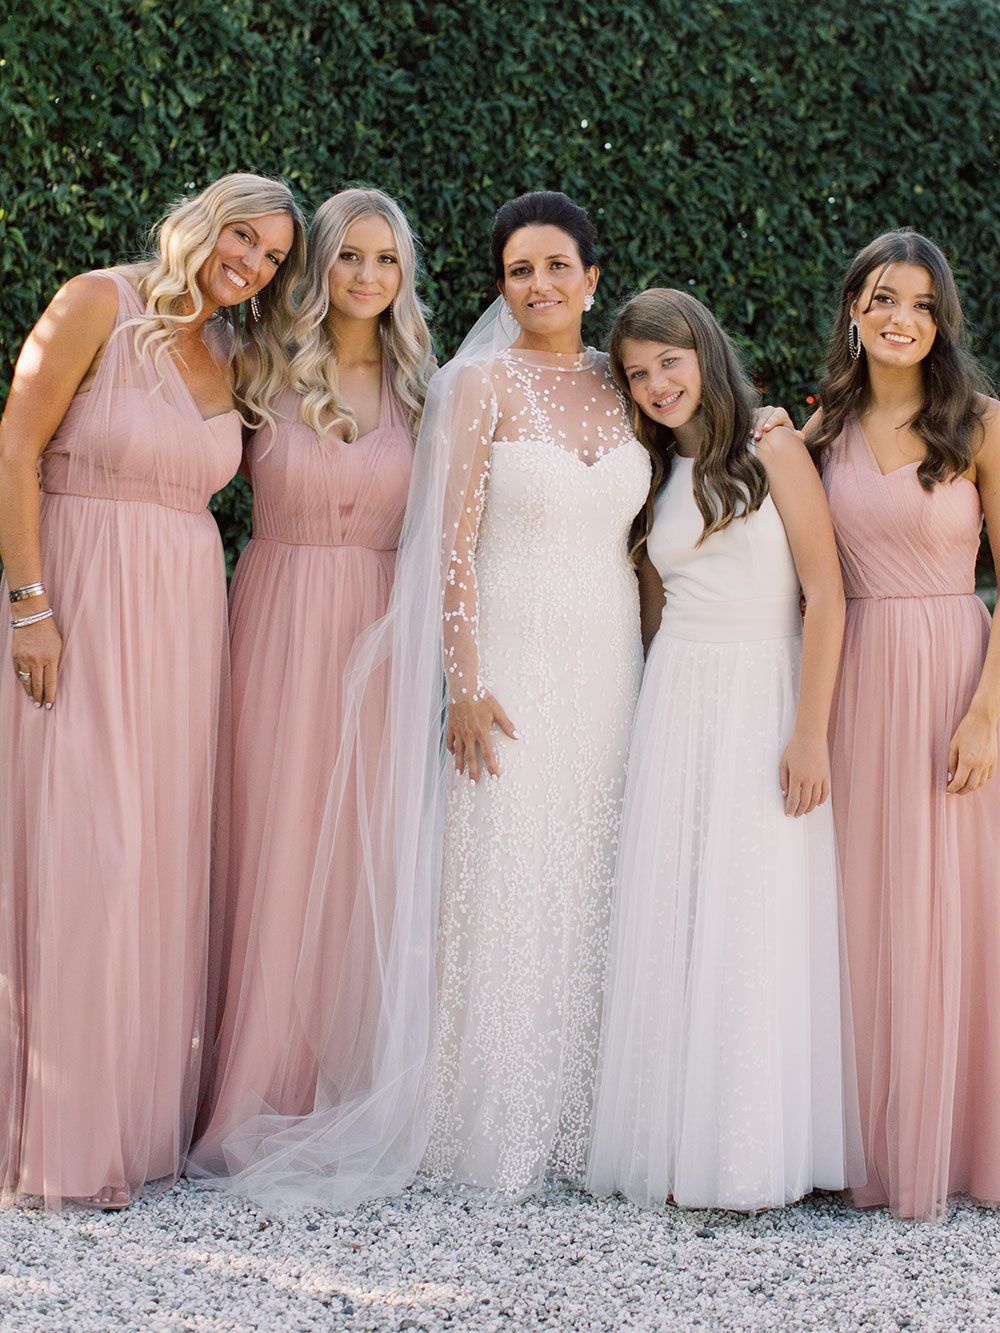 Bride wearing bespoke gown by Auckland wedding dress designer Vinka Design, with a high neckline and delicate spotted embroidery - with bridesmaids near hedge